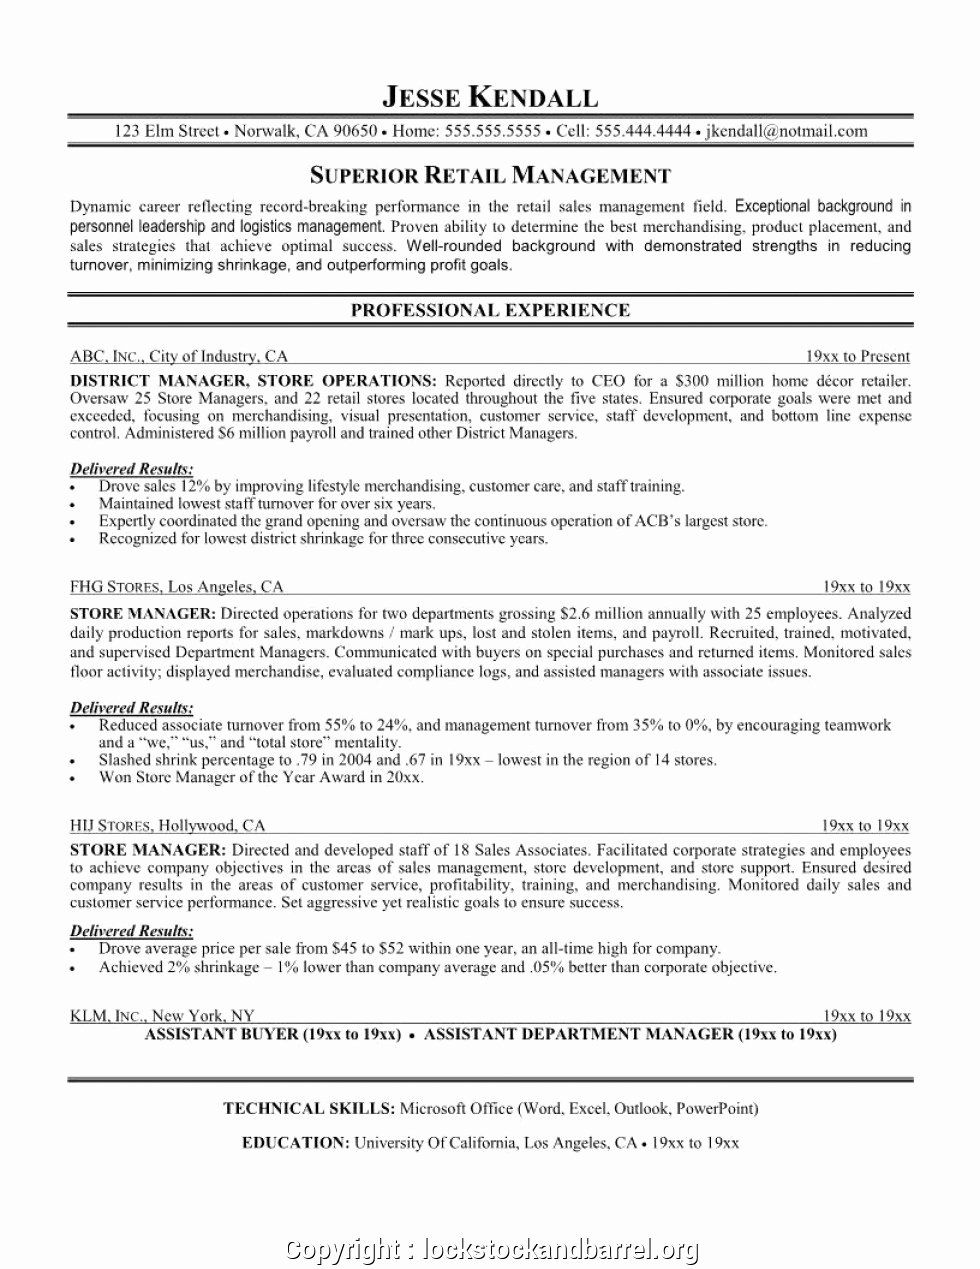 23 Resume Summary Examples for Retail in 2020 Retail